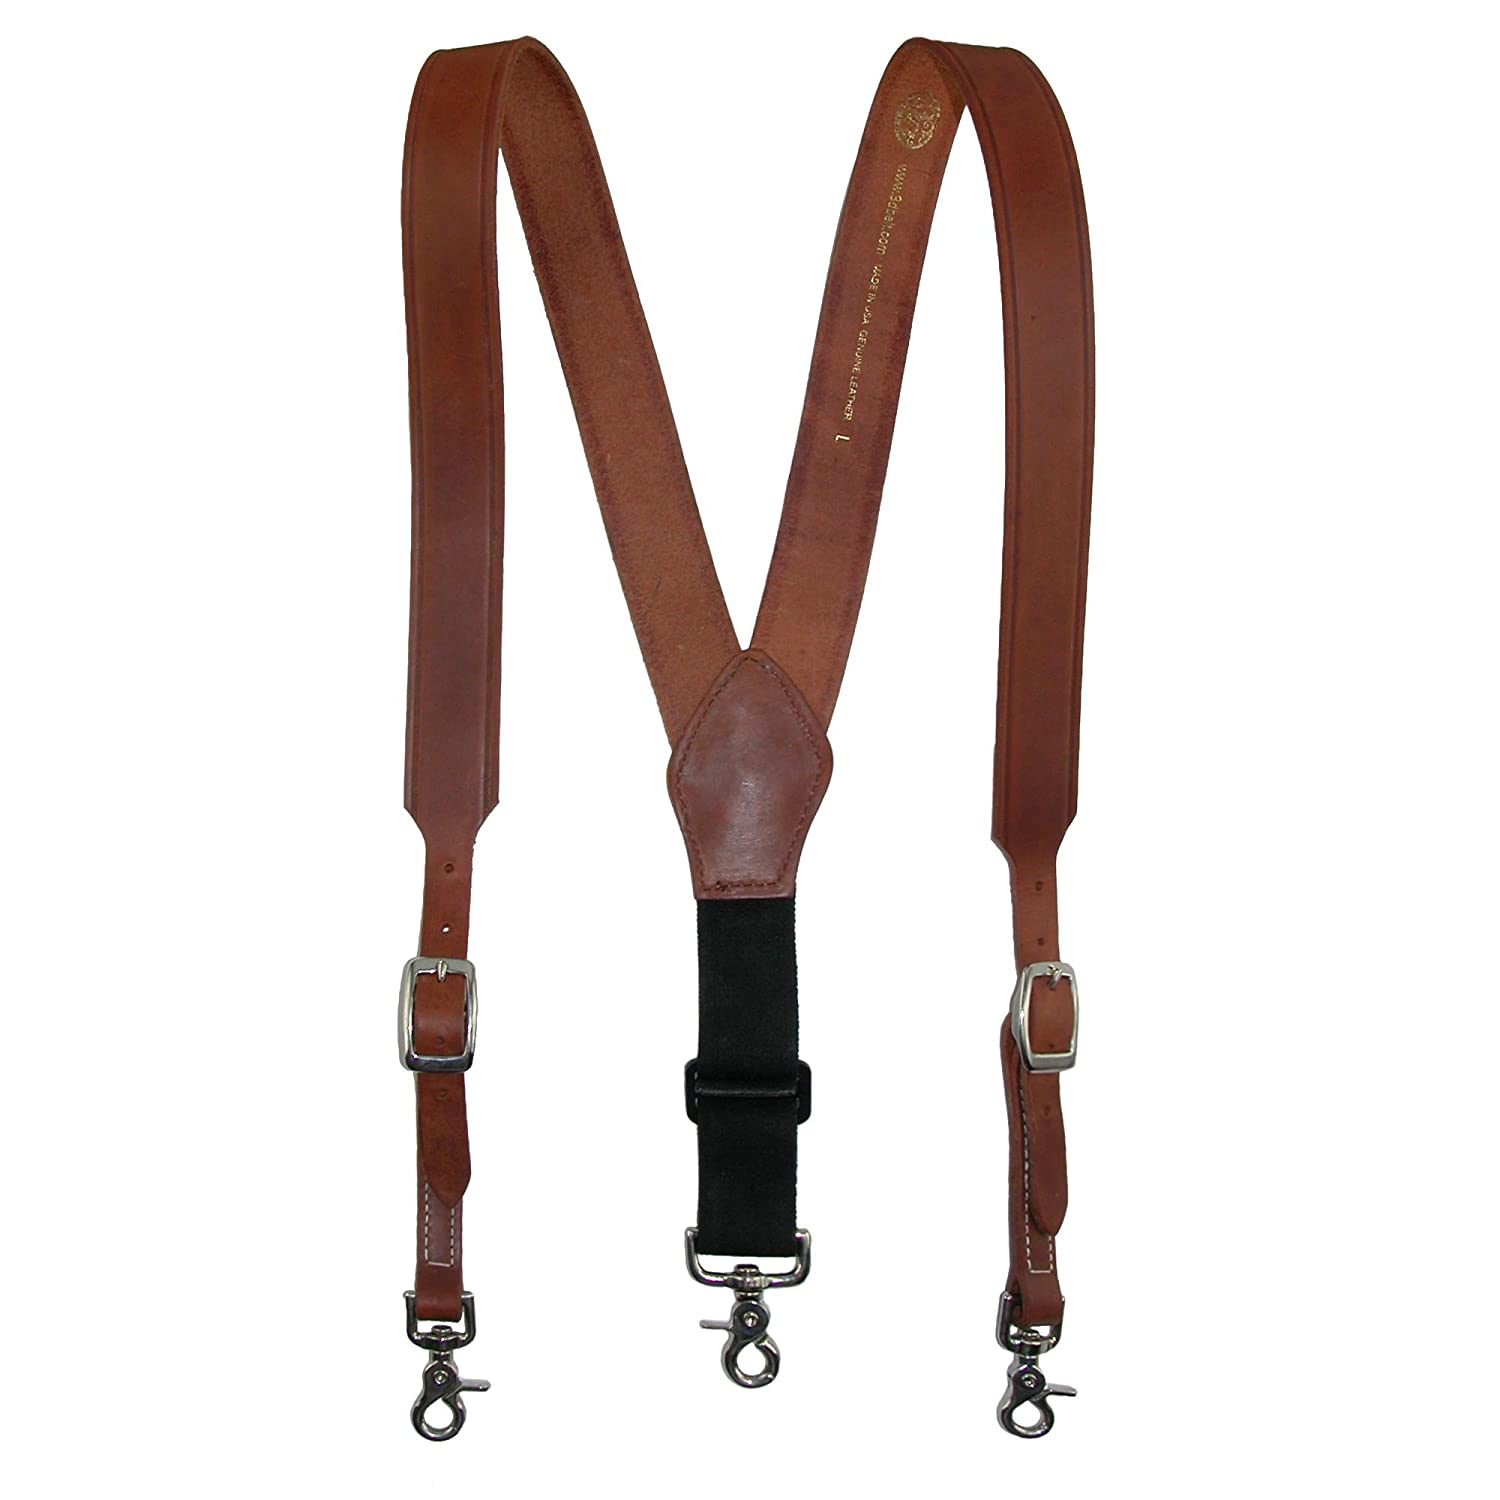 3 D Belt Company Men's Leather Weathered Suspender with Metal Swivel Hook Ends S511LG